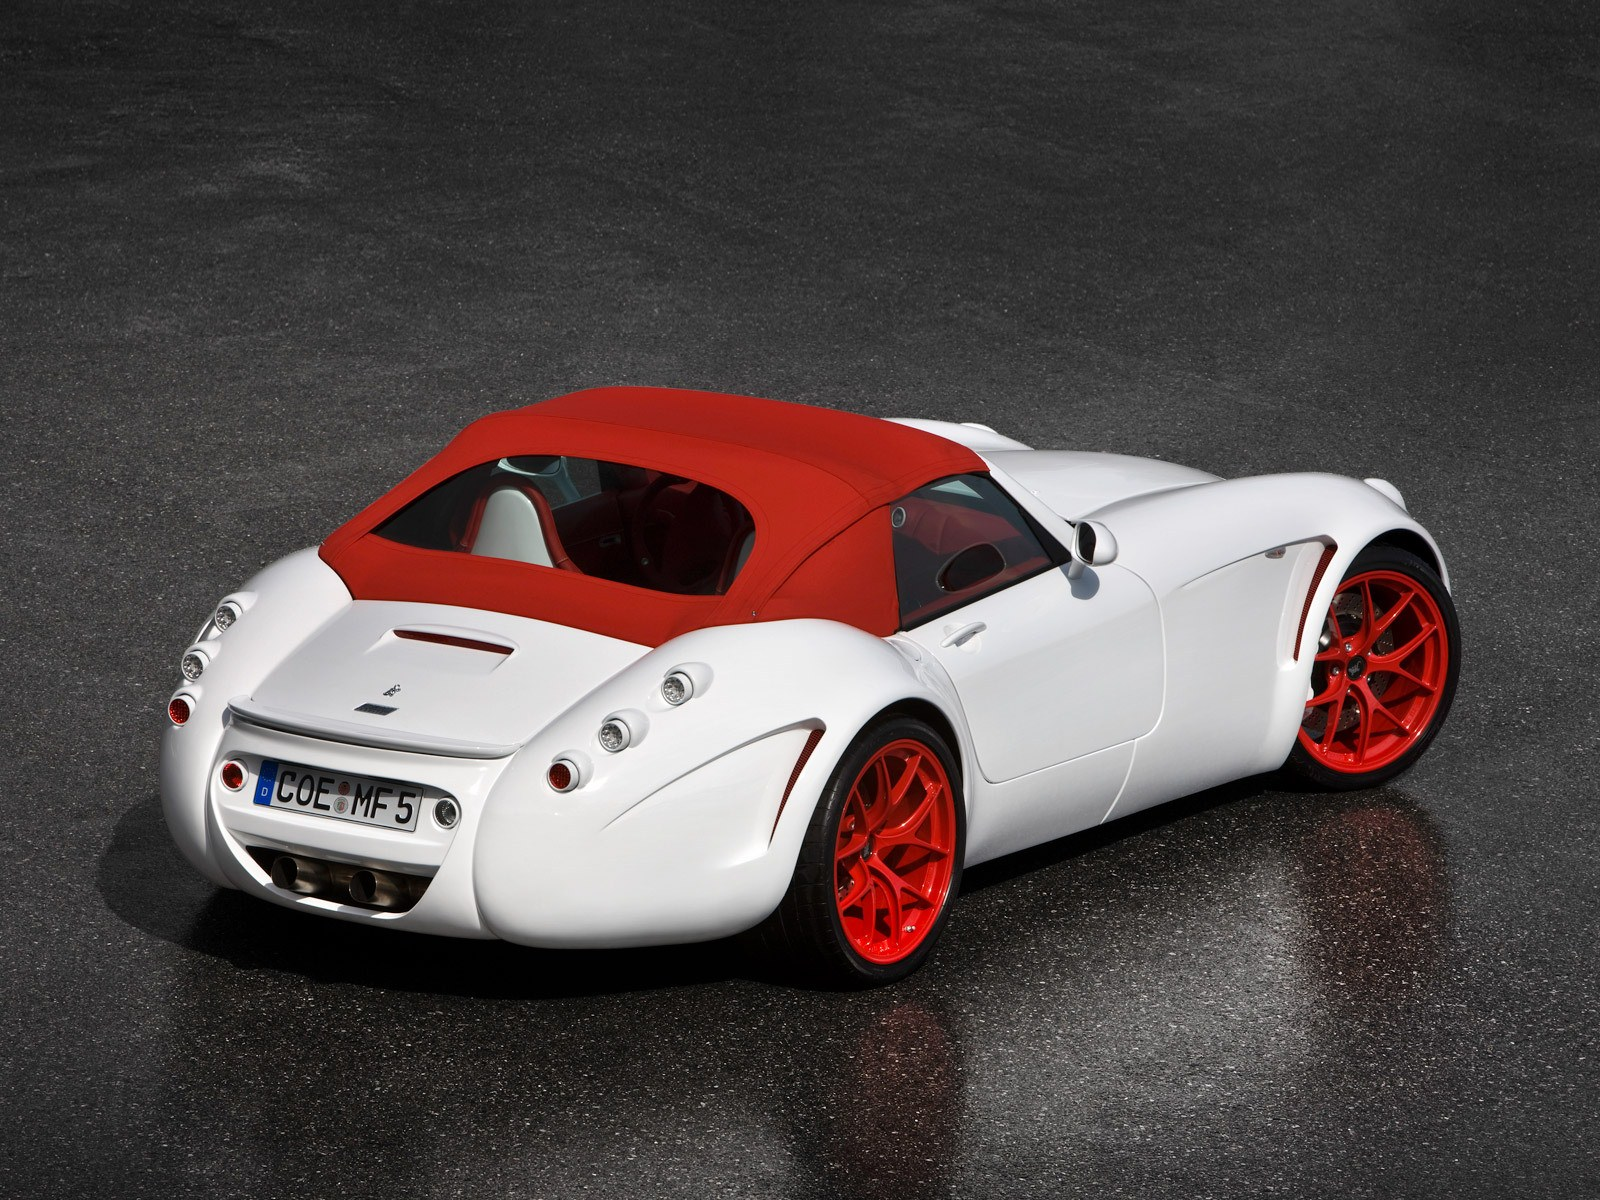 Official: New V8 engines from BMW for Wiesmann MF4 and MF5